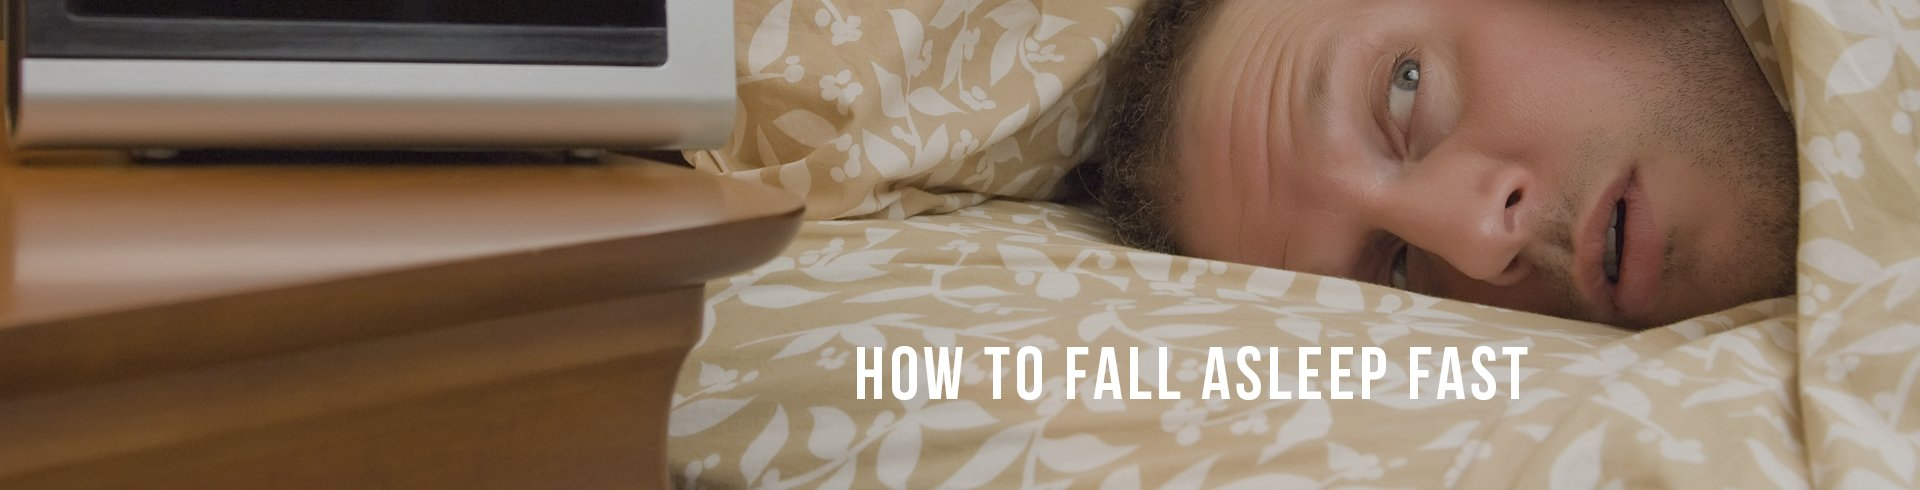 how to get fall asleep fast